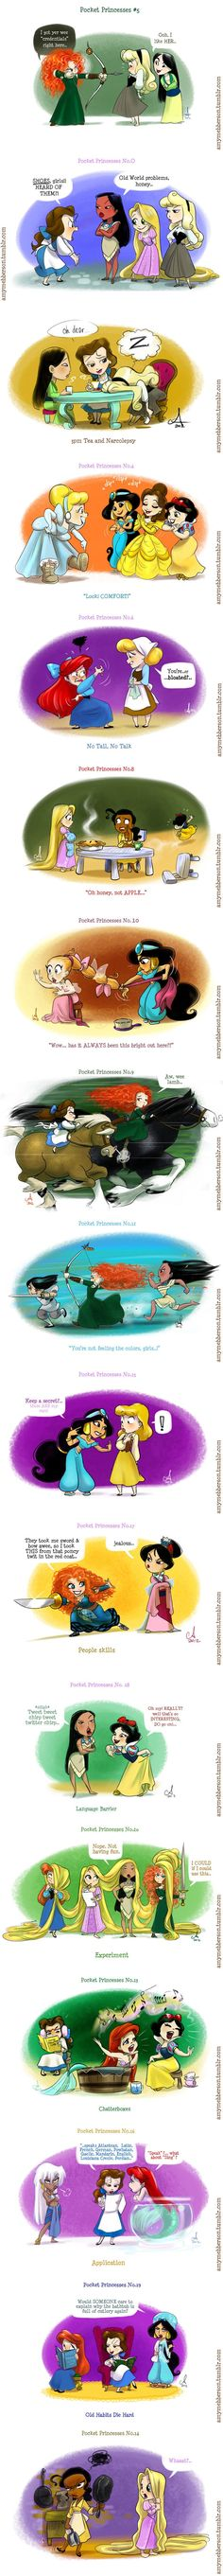 Funny Disney Pocket Princesses Comics http://geektyrant.com/news/2012/6/3/funny-disney-pocket-princesses-comics.html: